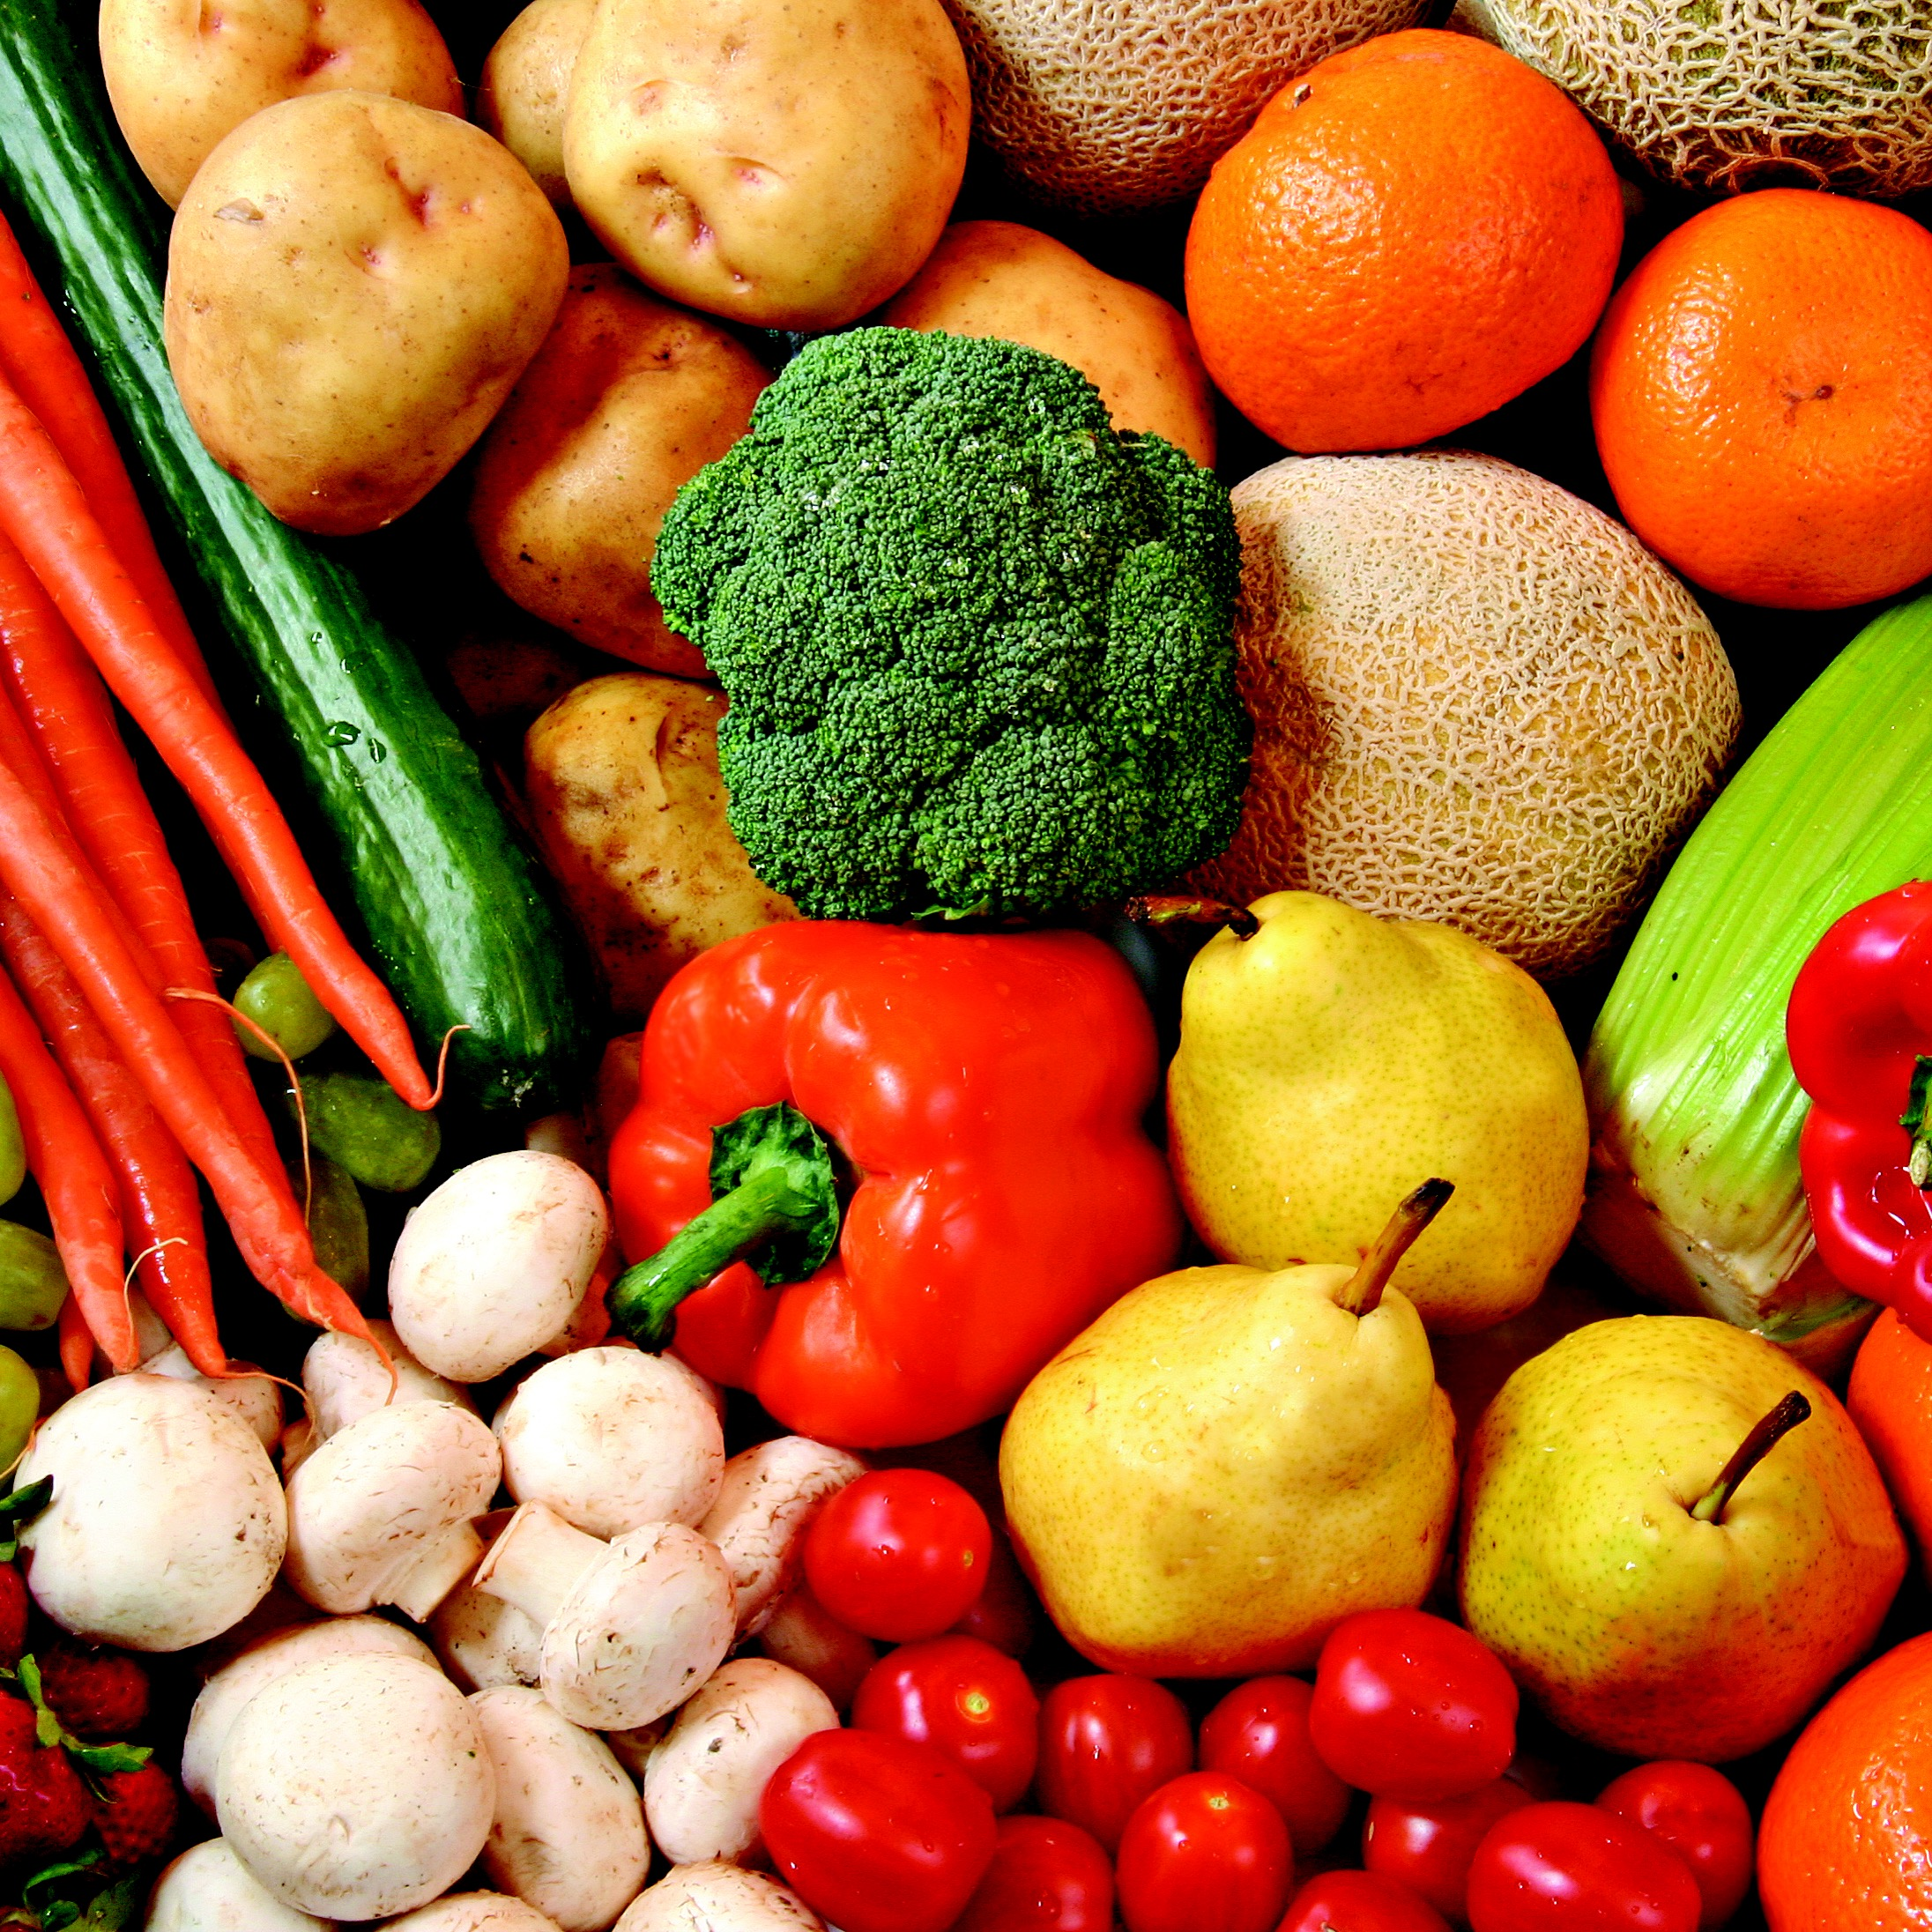 Anticancer Fruits, Vegetables, And Herbs | Cathy Biase | RxEconsult